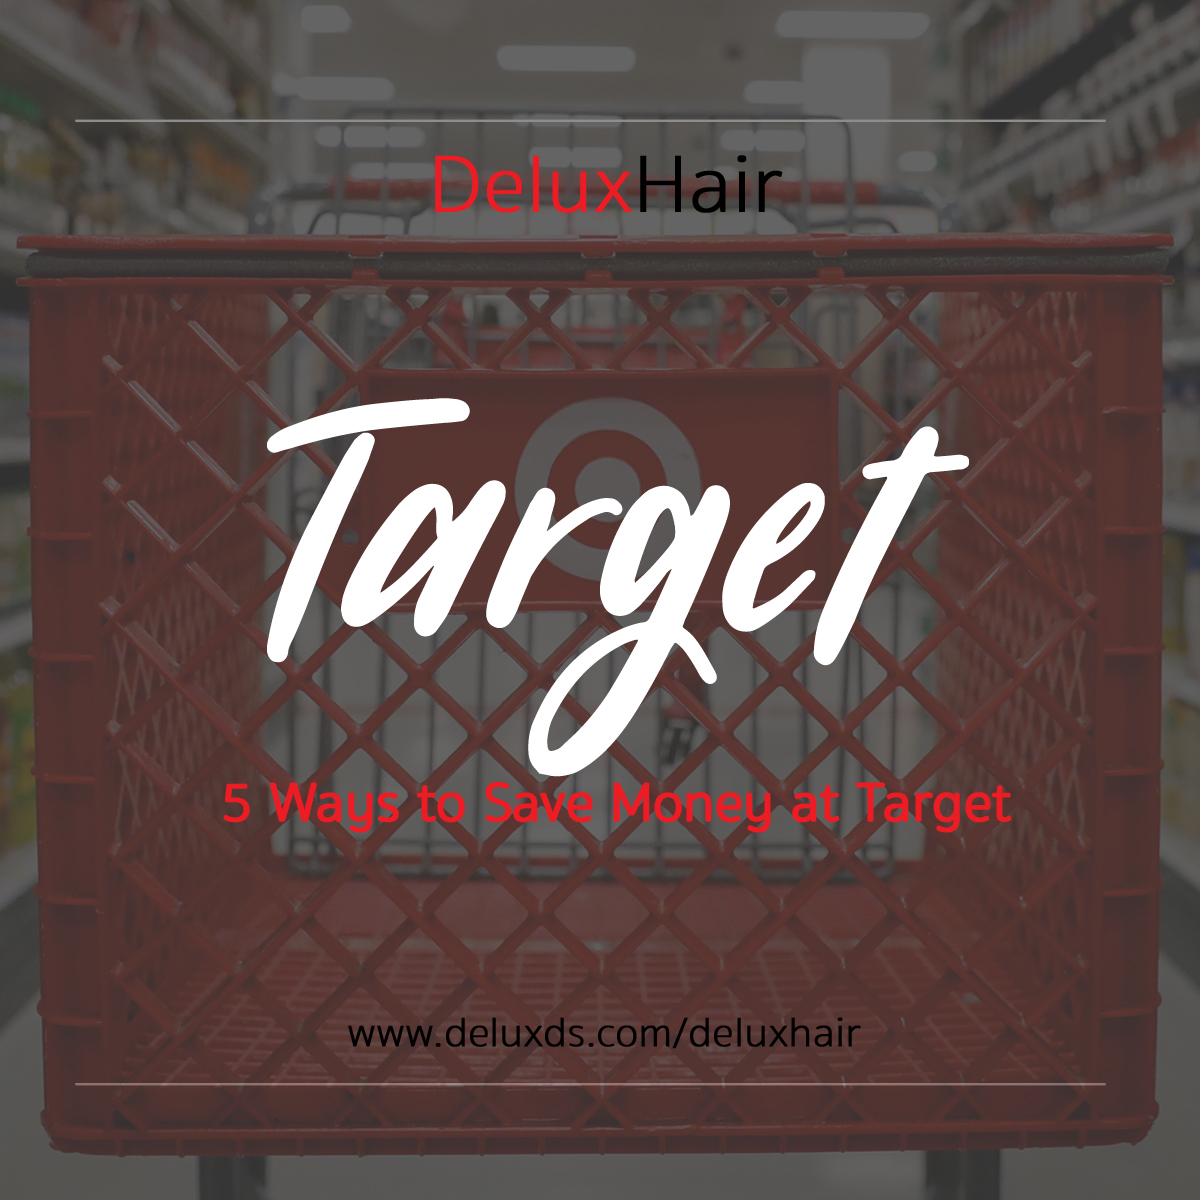 DeluxHair - 5 Ways to Save Money at Target with FabfitFun